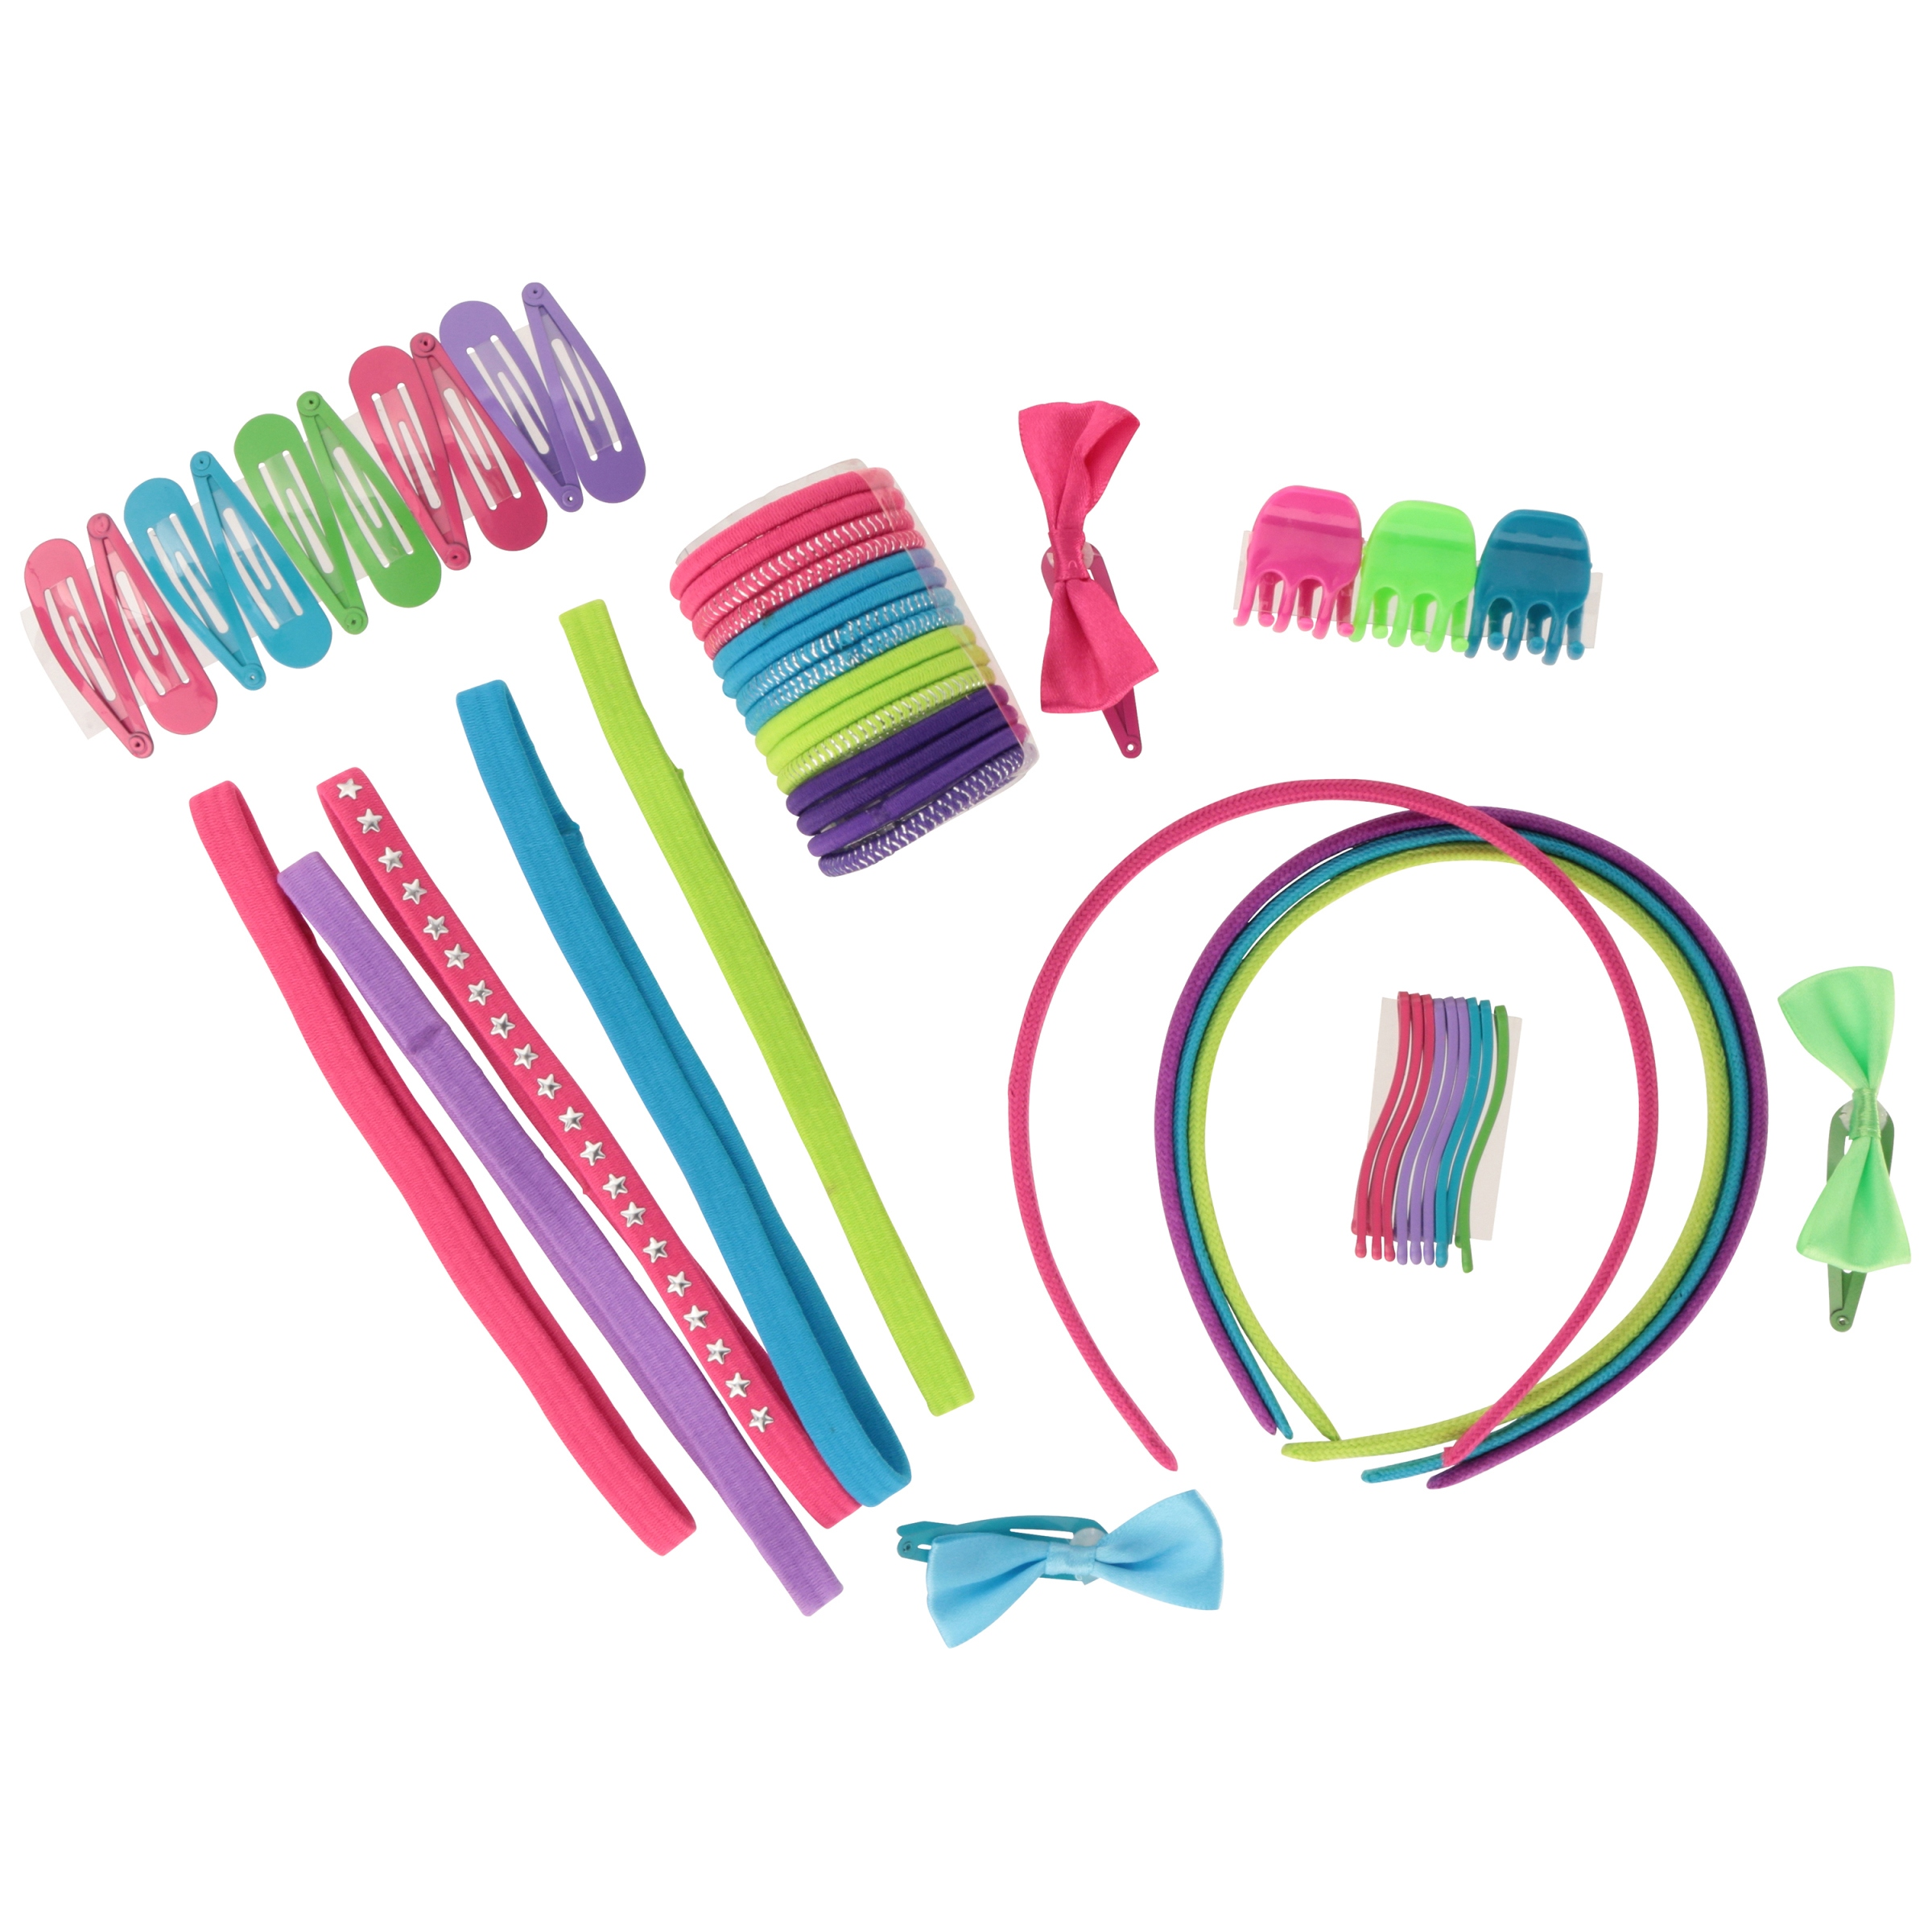 Enchanté Accessories Kids Hair Accessories Set with Bonus Bag 50 pc Pack